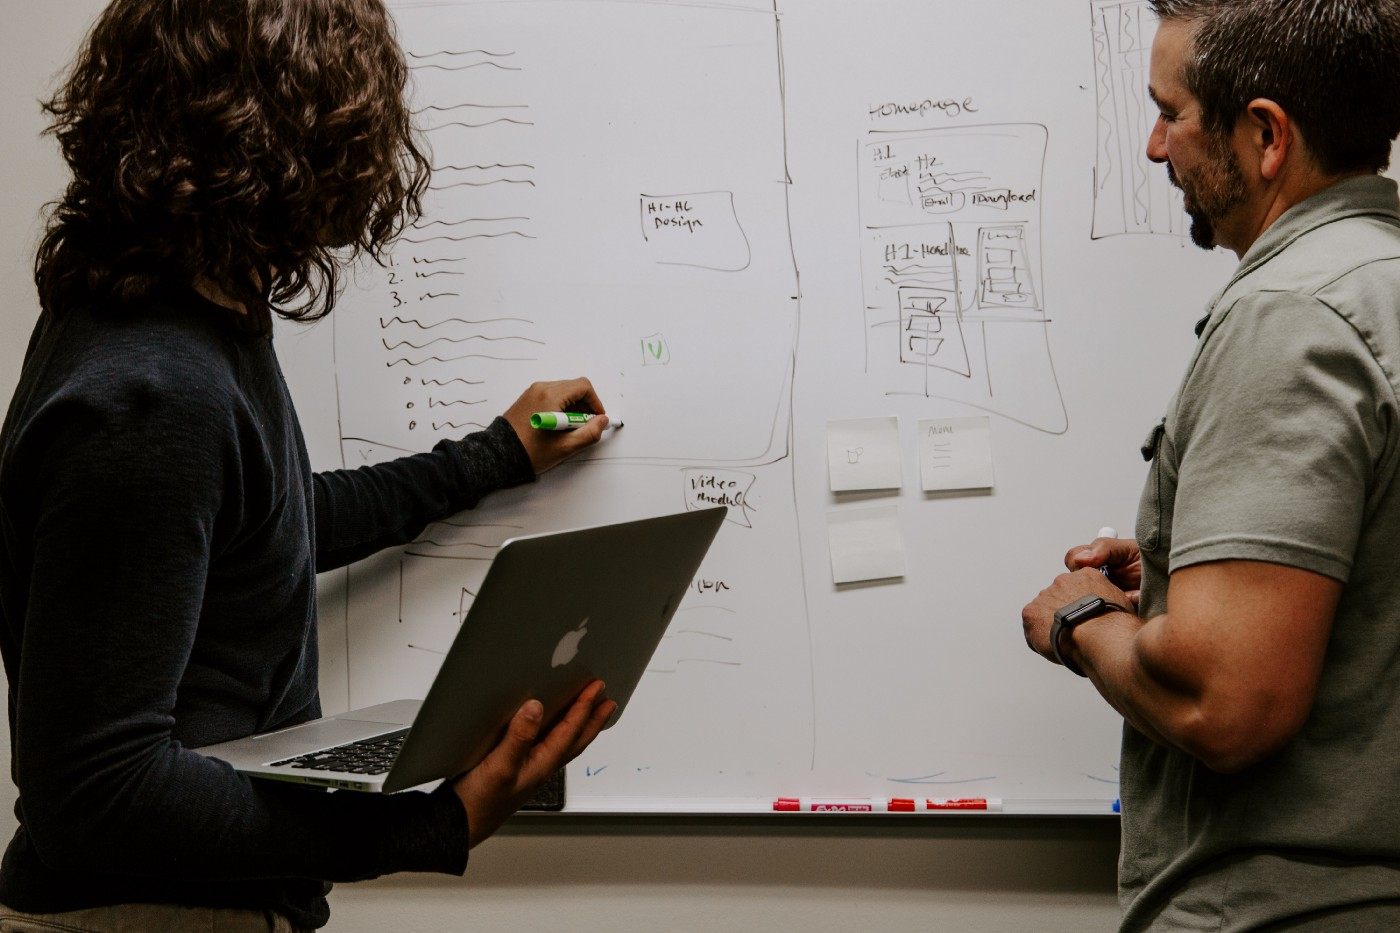 Two people working together in tandem—a woman holding a computer writing on a whiteboard and her teammate following along.